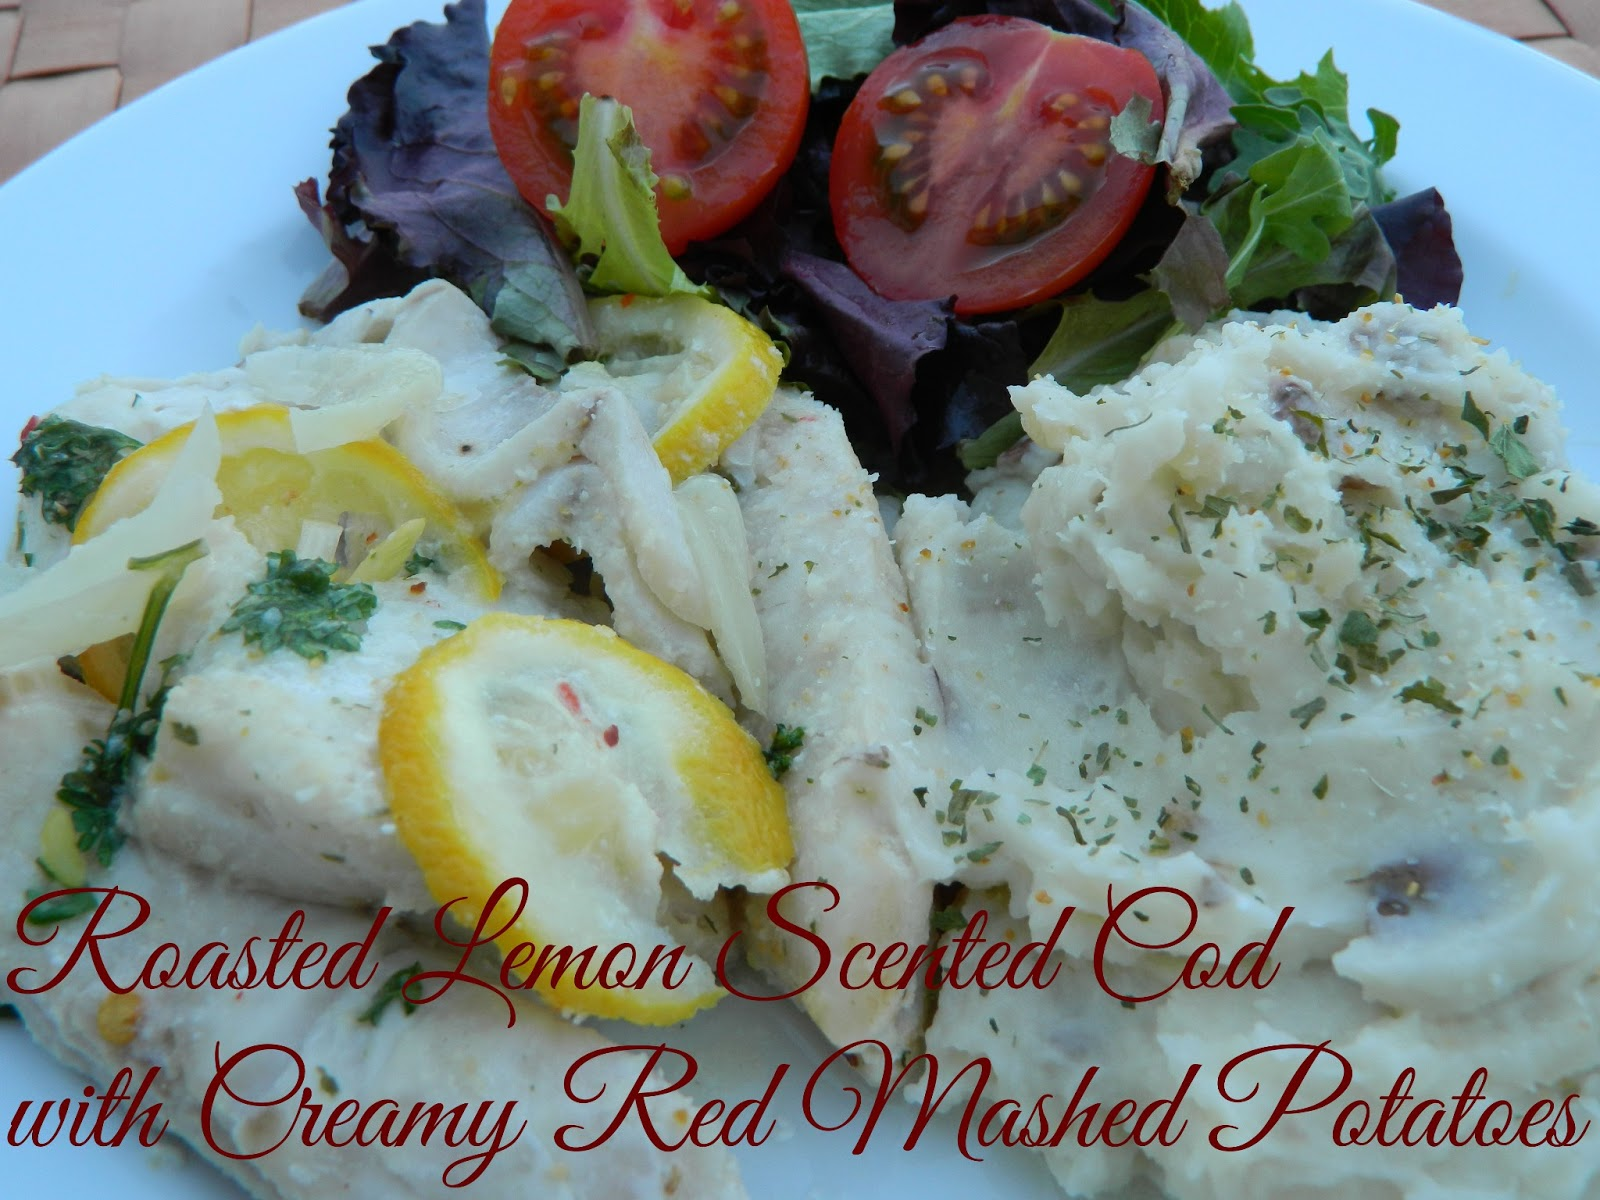 ... Things: Roasted Lemon Scented Cod with Creamy Red Mashed Potatoes